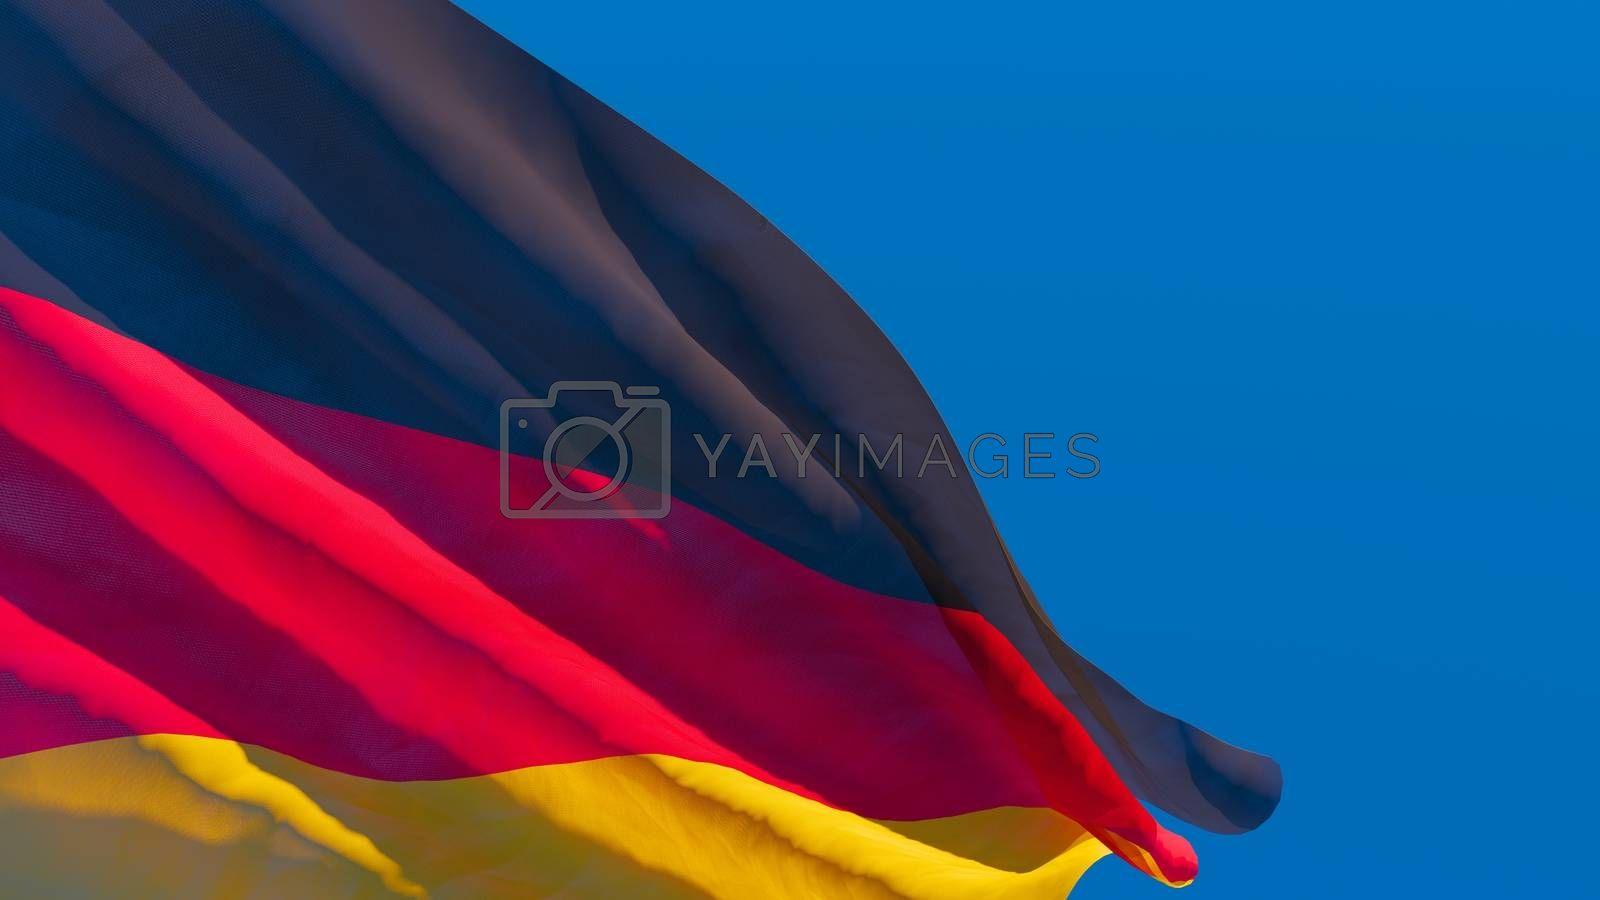 3D rendering of the German national flag against a blue sky.